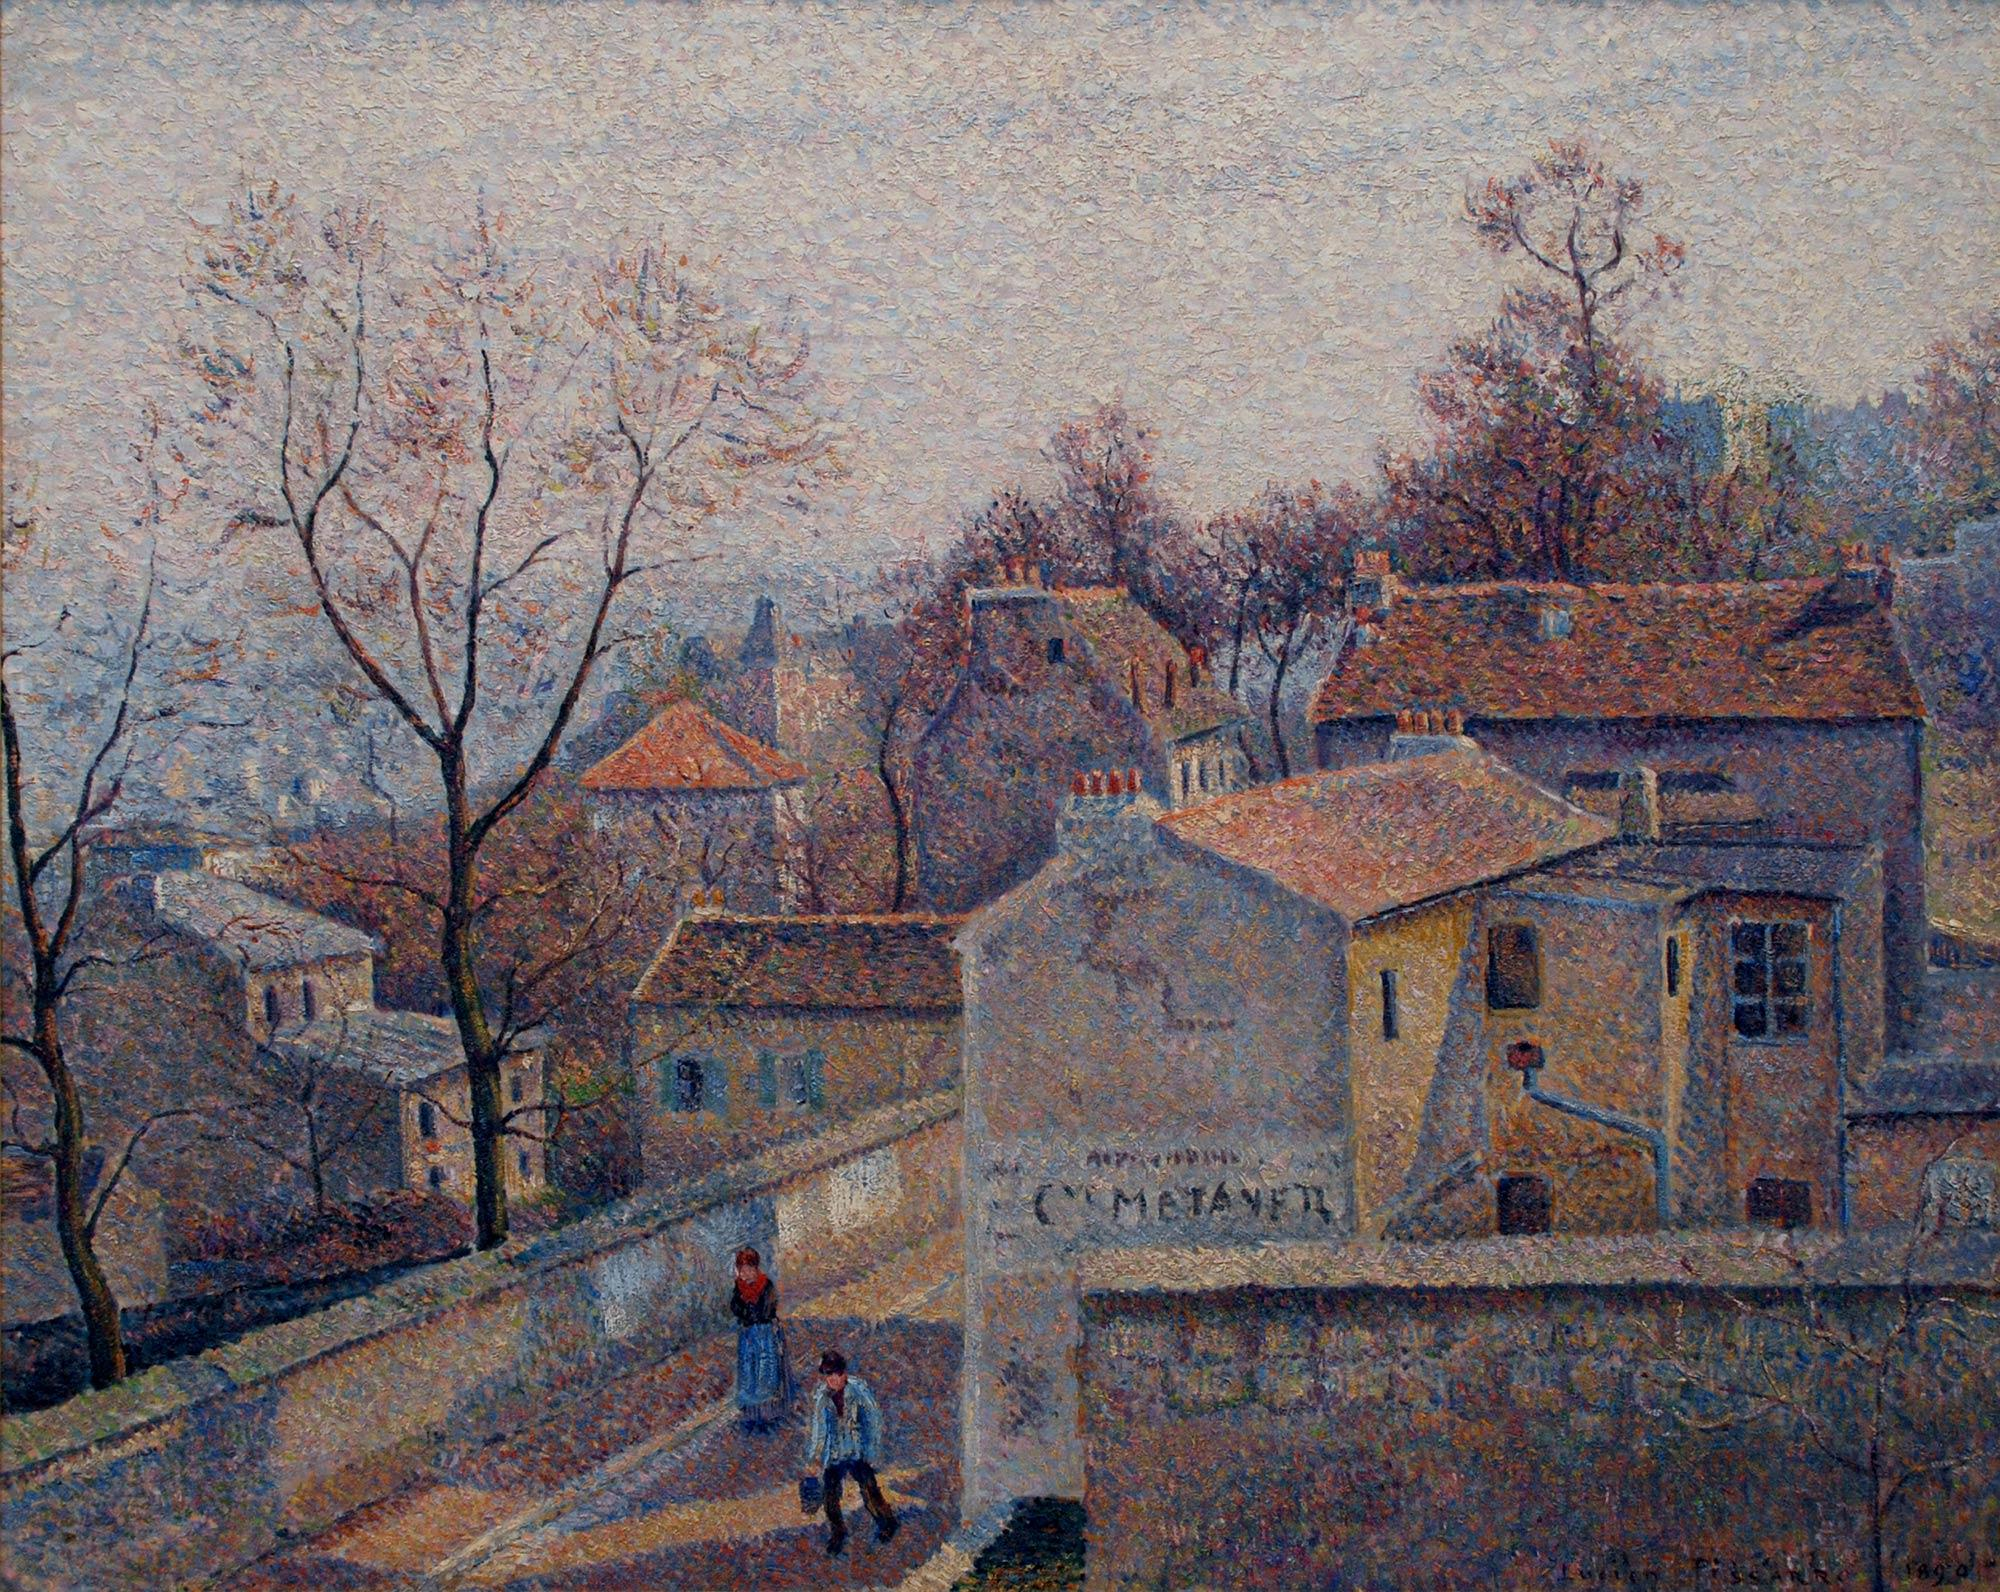 Lucien Pissarro, French, 1863–1944. Saint Vincent Street, Winter Sun, 1890. Oil on canvas, 25 ¾ x 32 in. Gift of The Whiting Foundation through Donald E. Johnson, 1979.201